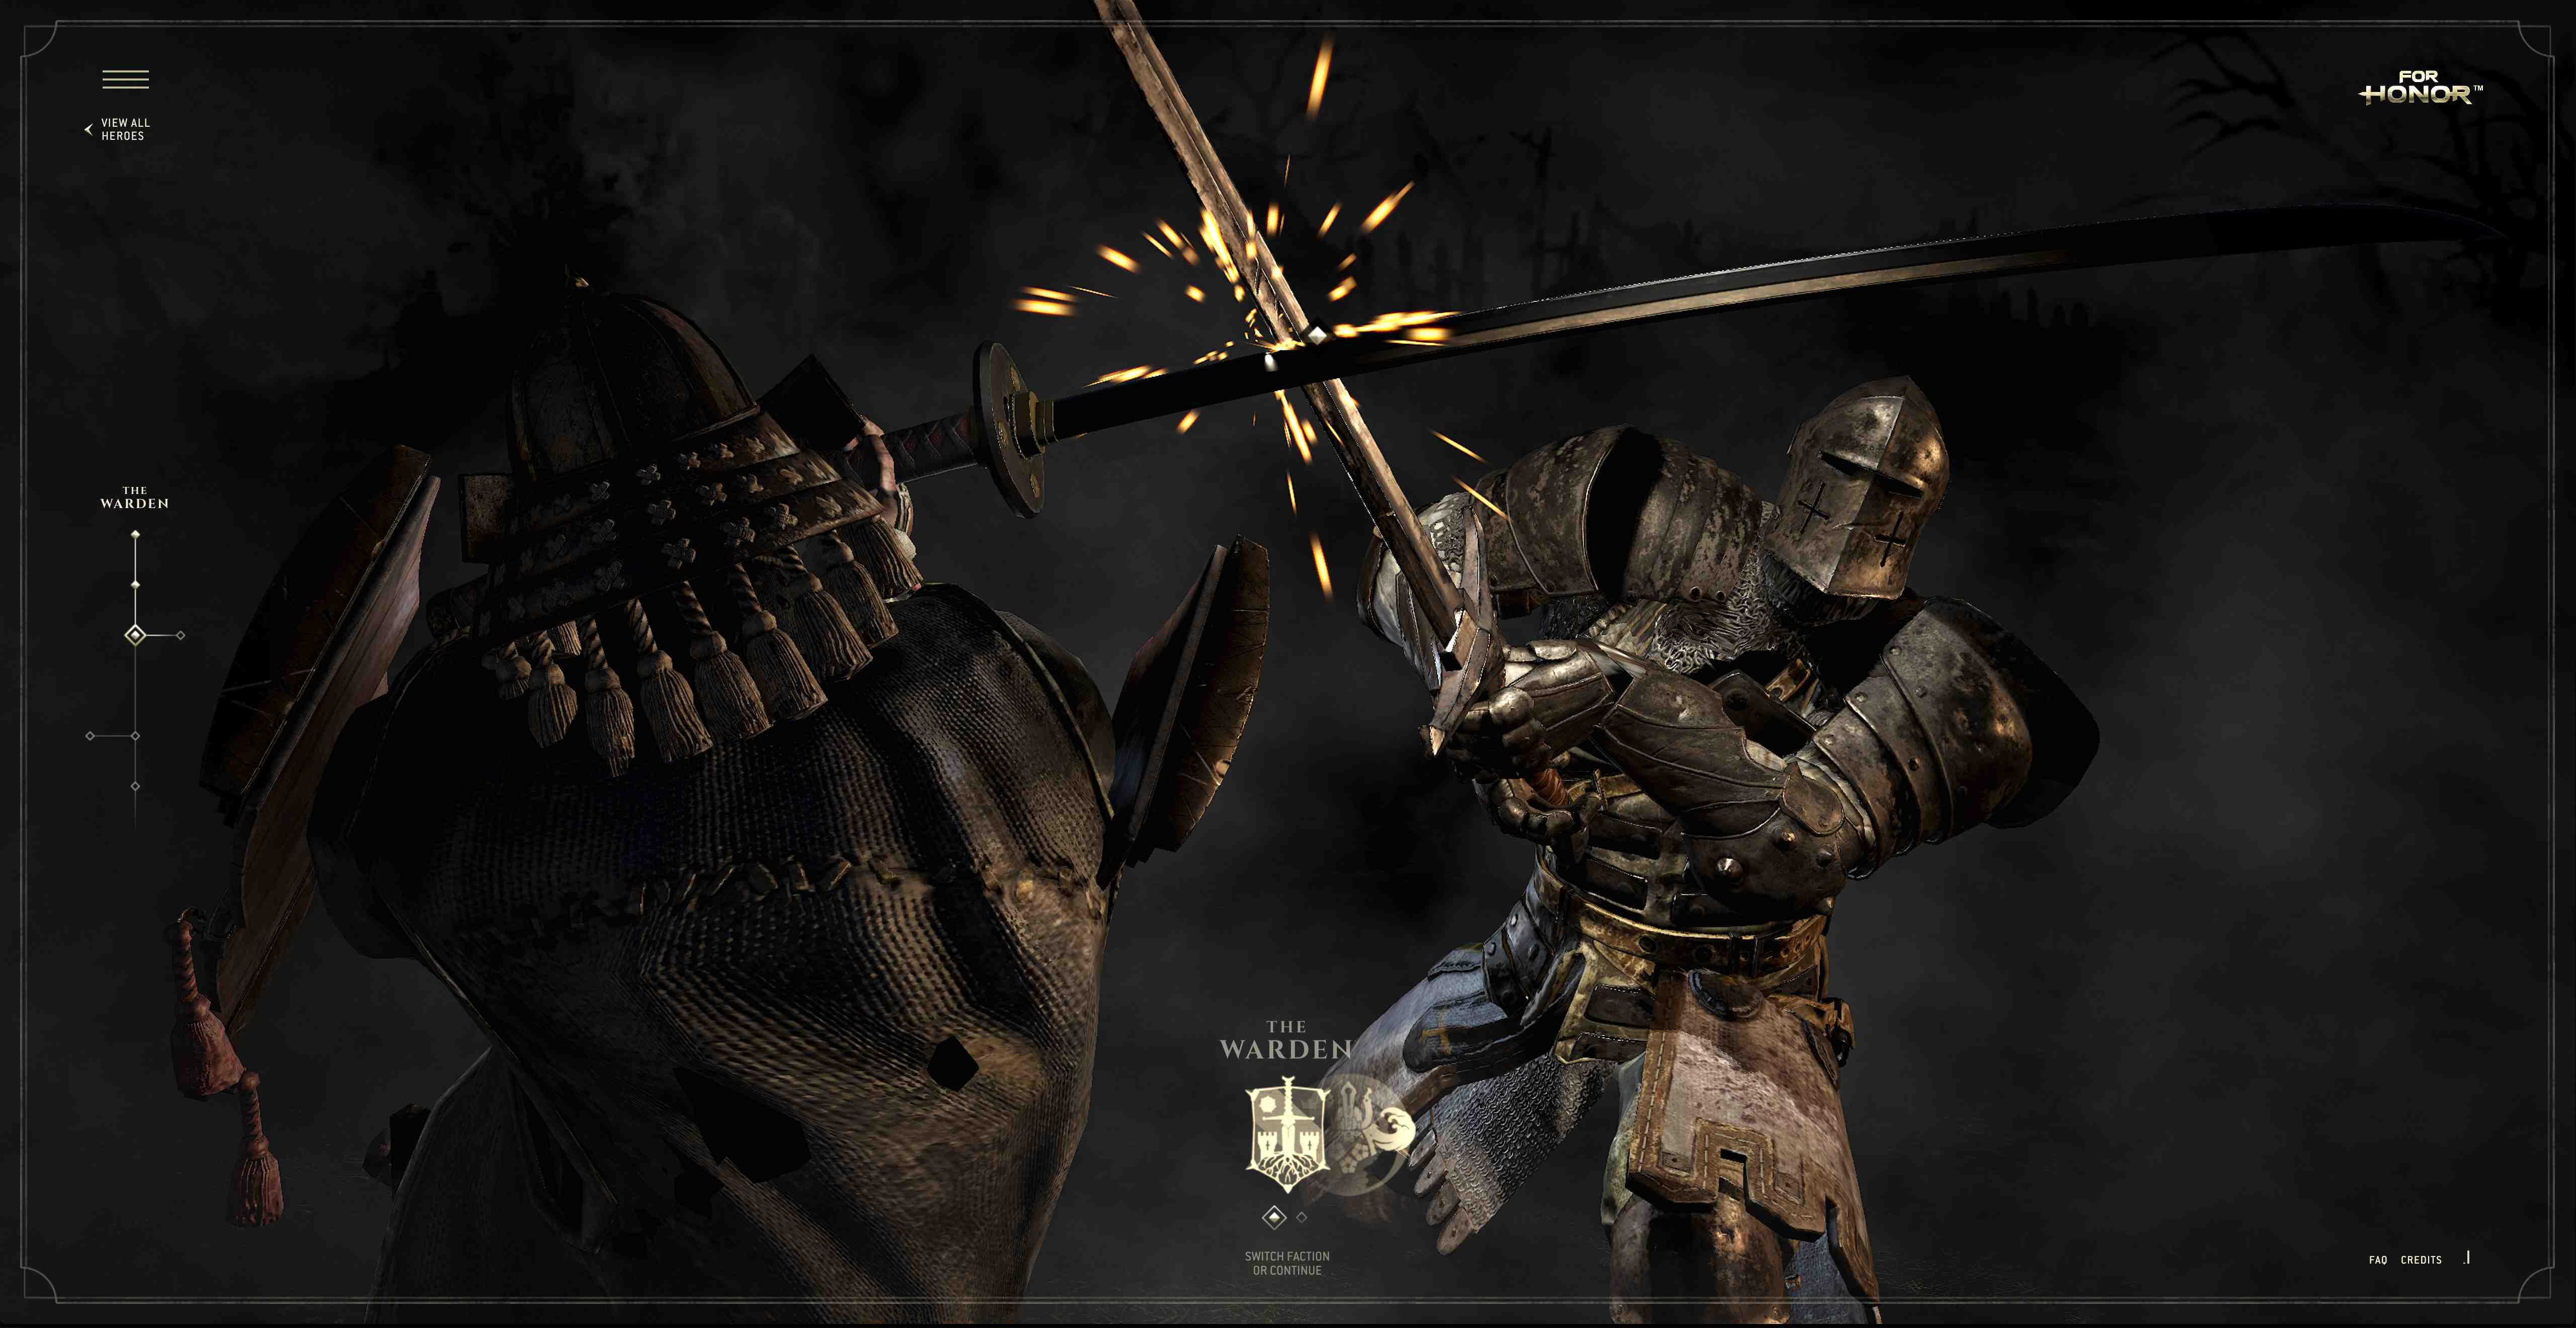 scars for honor